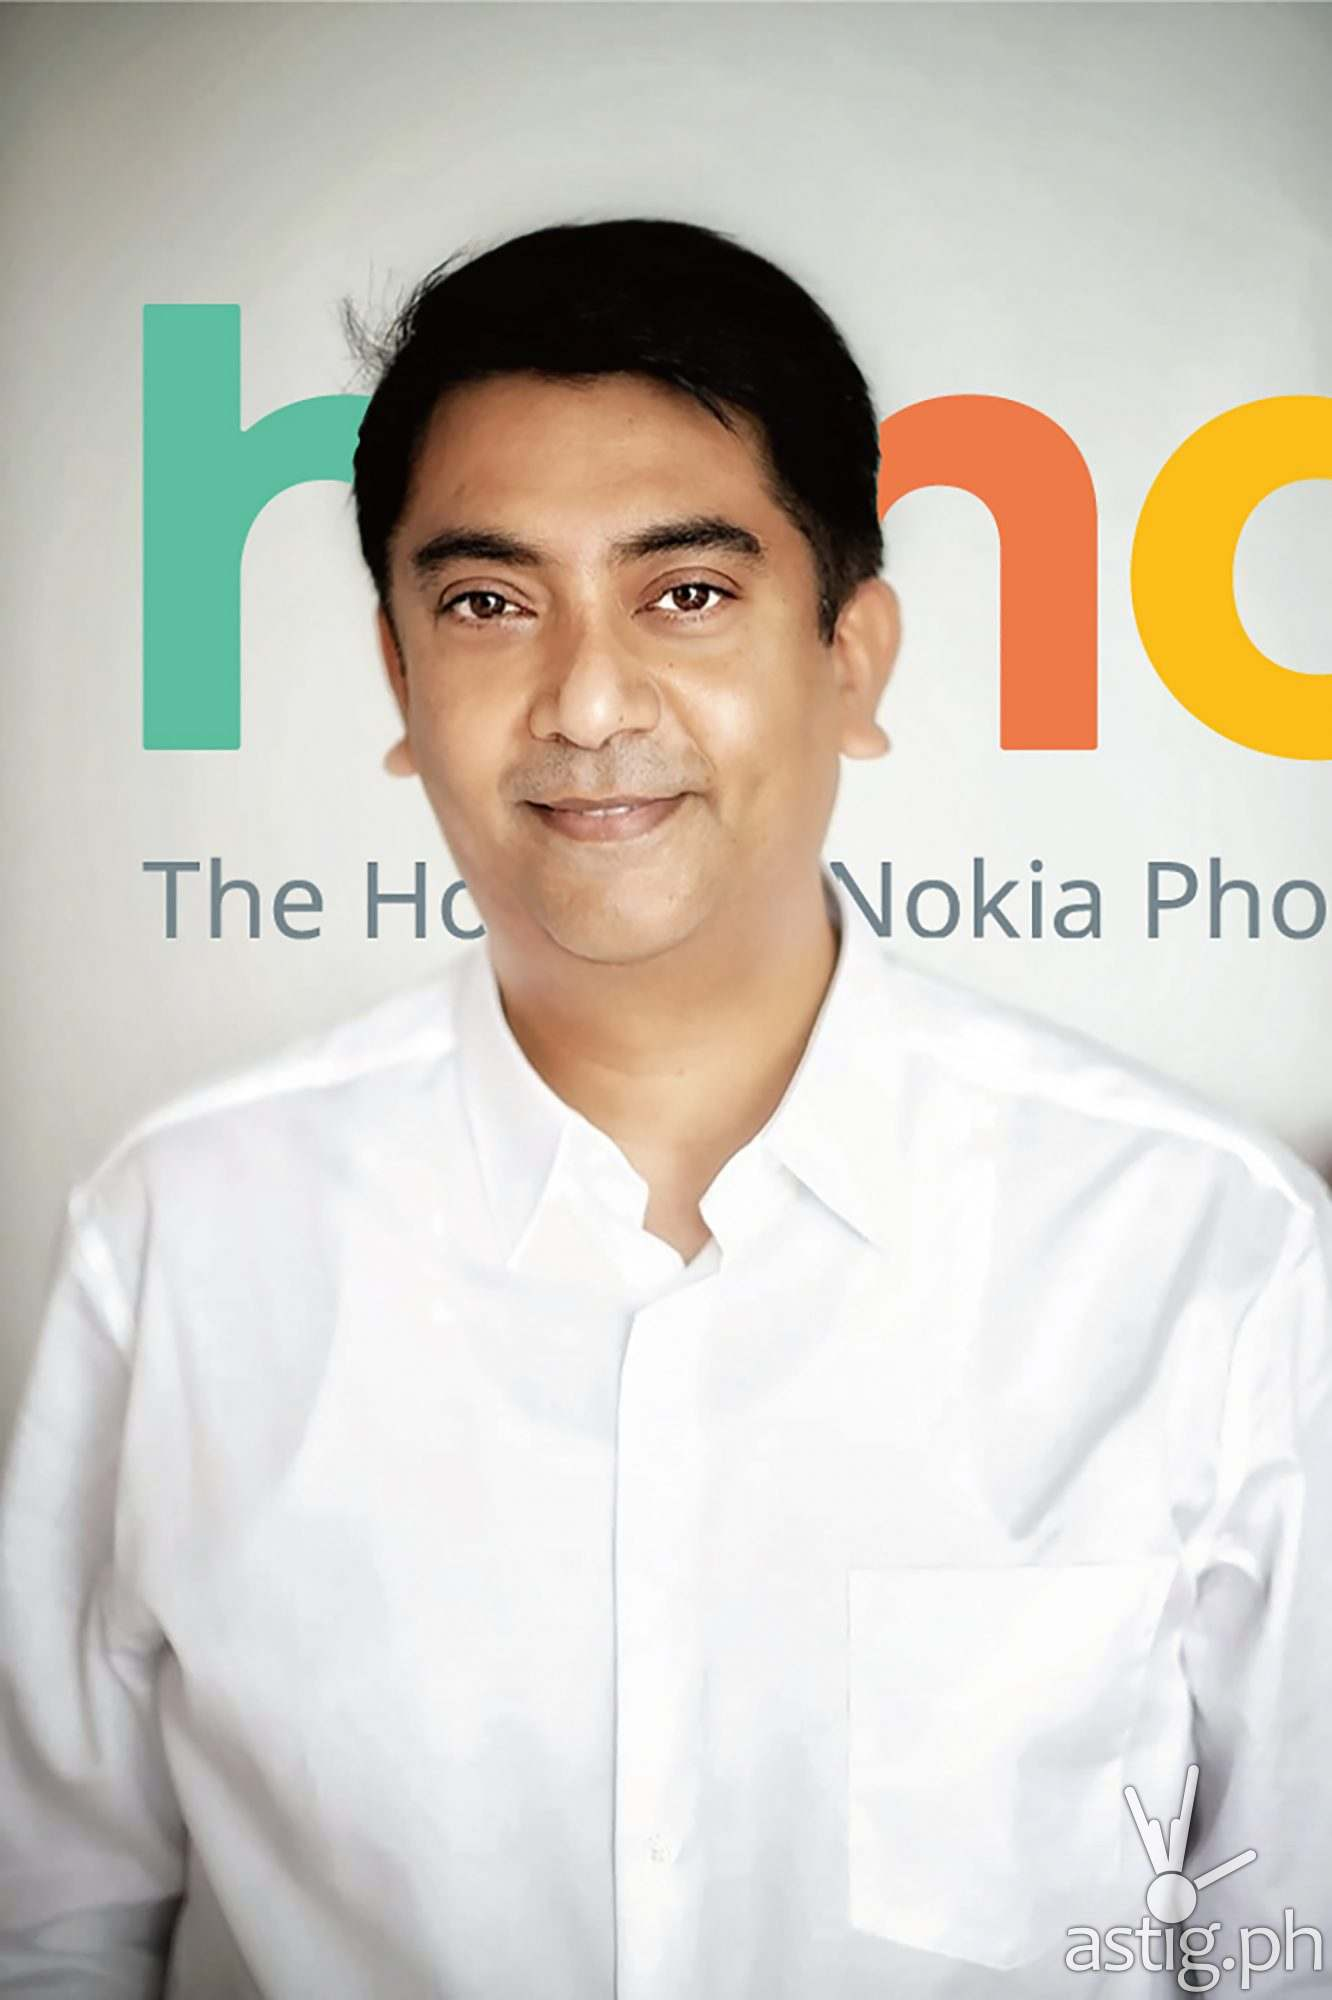 Ravi Kunwar, Regional Head for Pan Asia, HMD Global